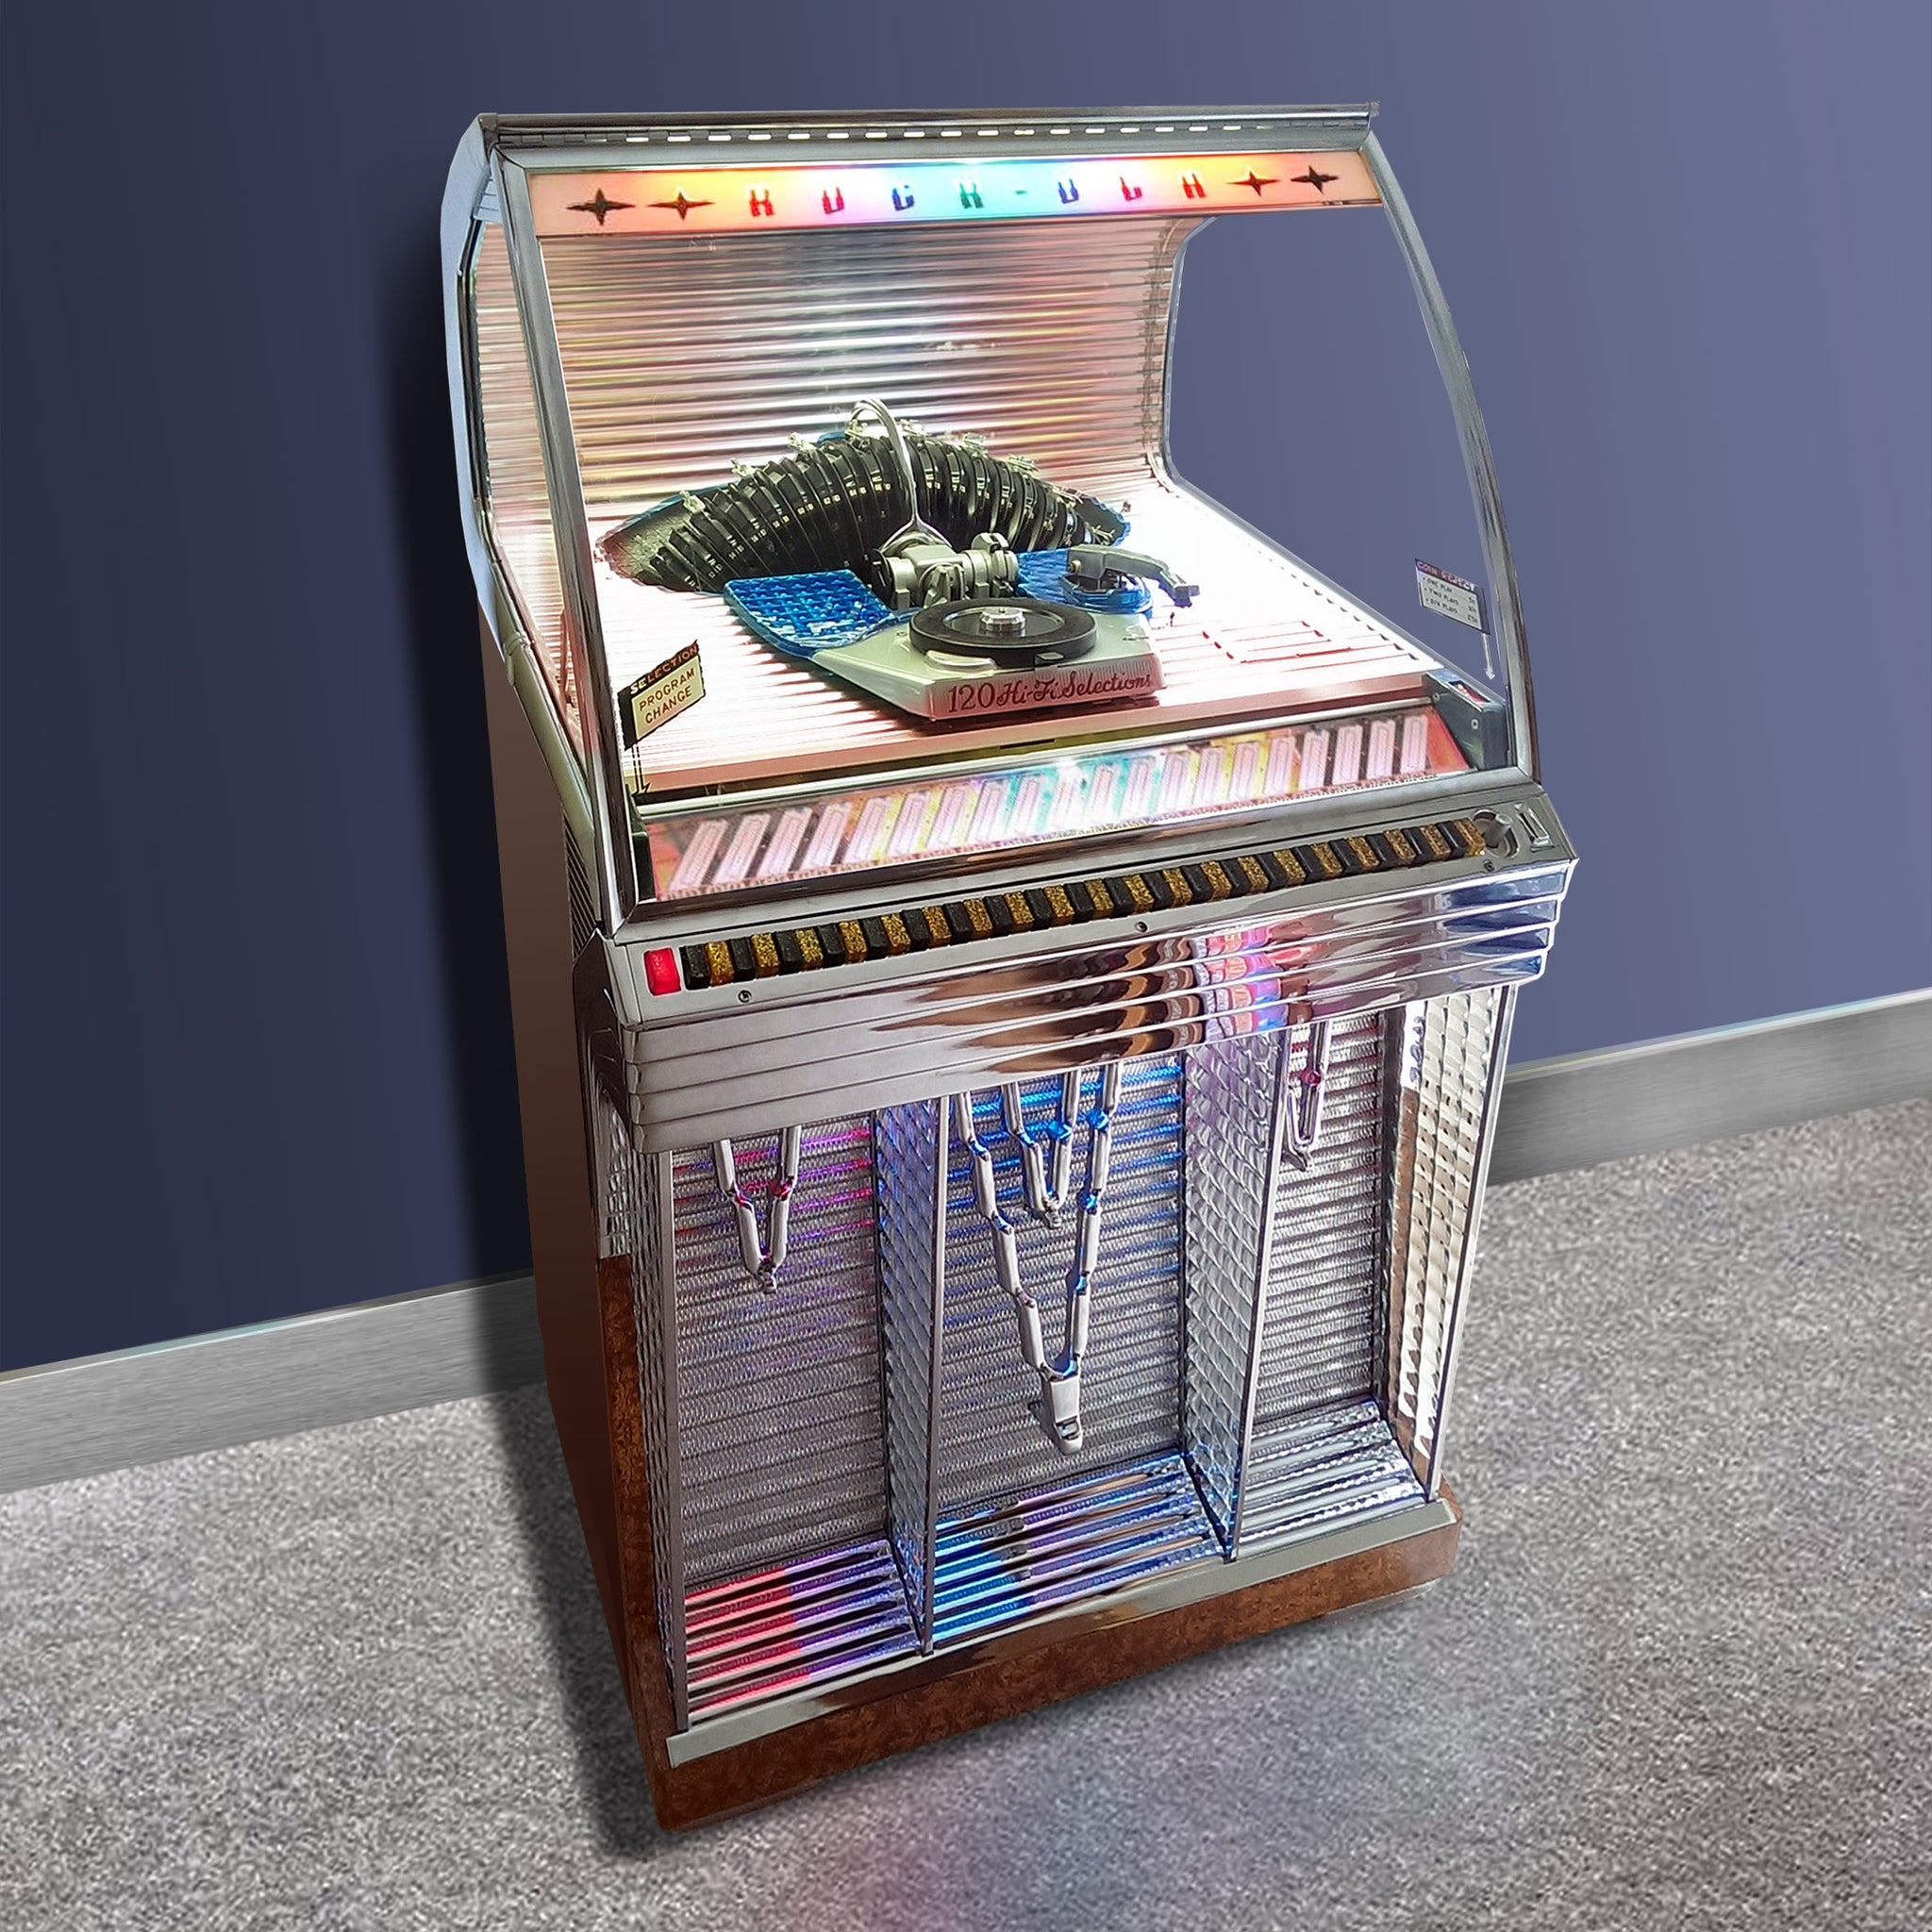 The 1955 Rock Ola 1448 120 selection Jukebox